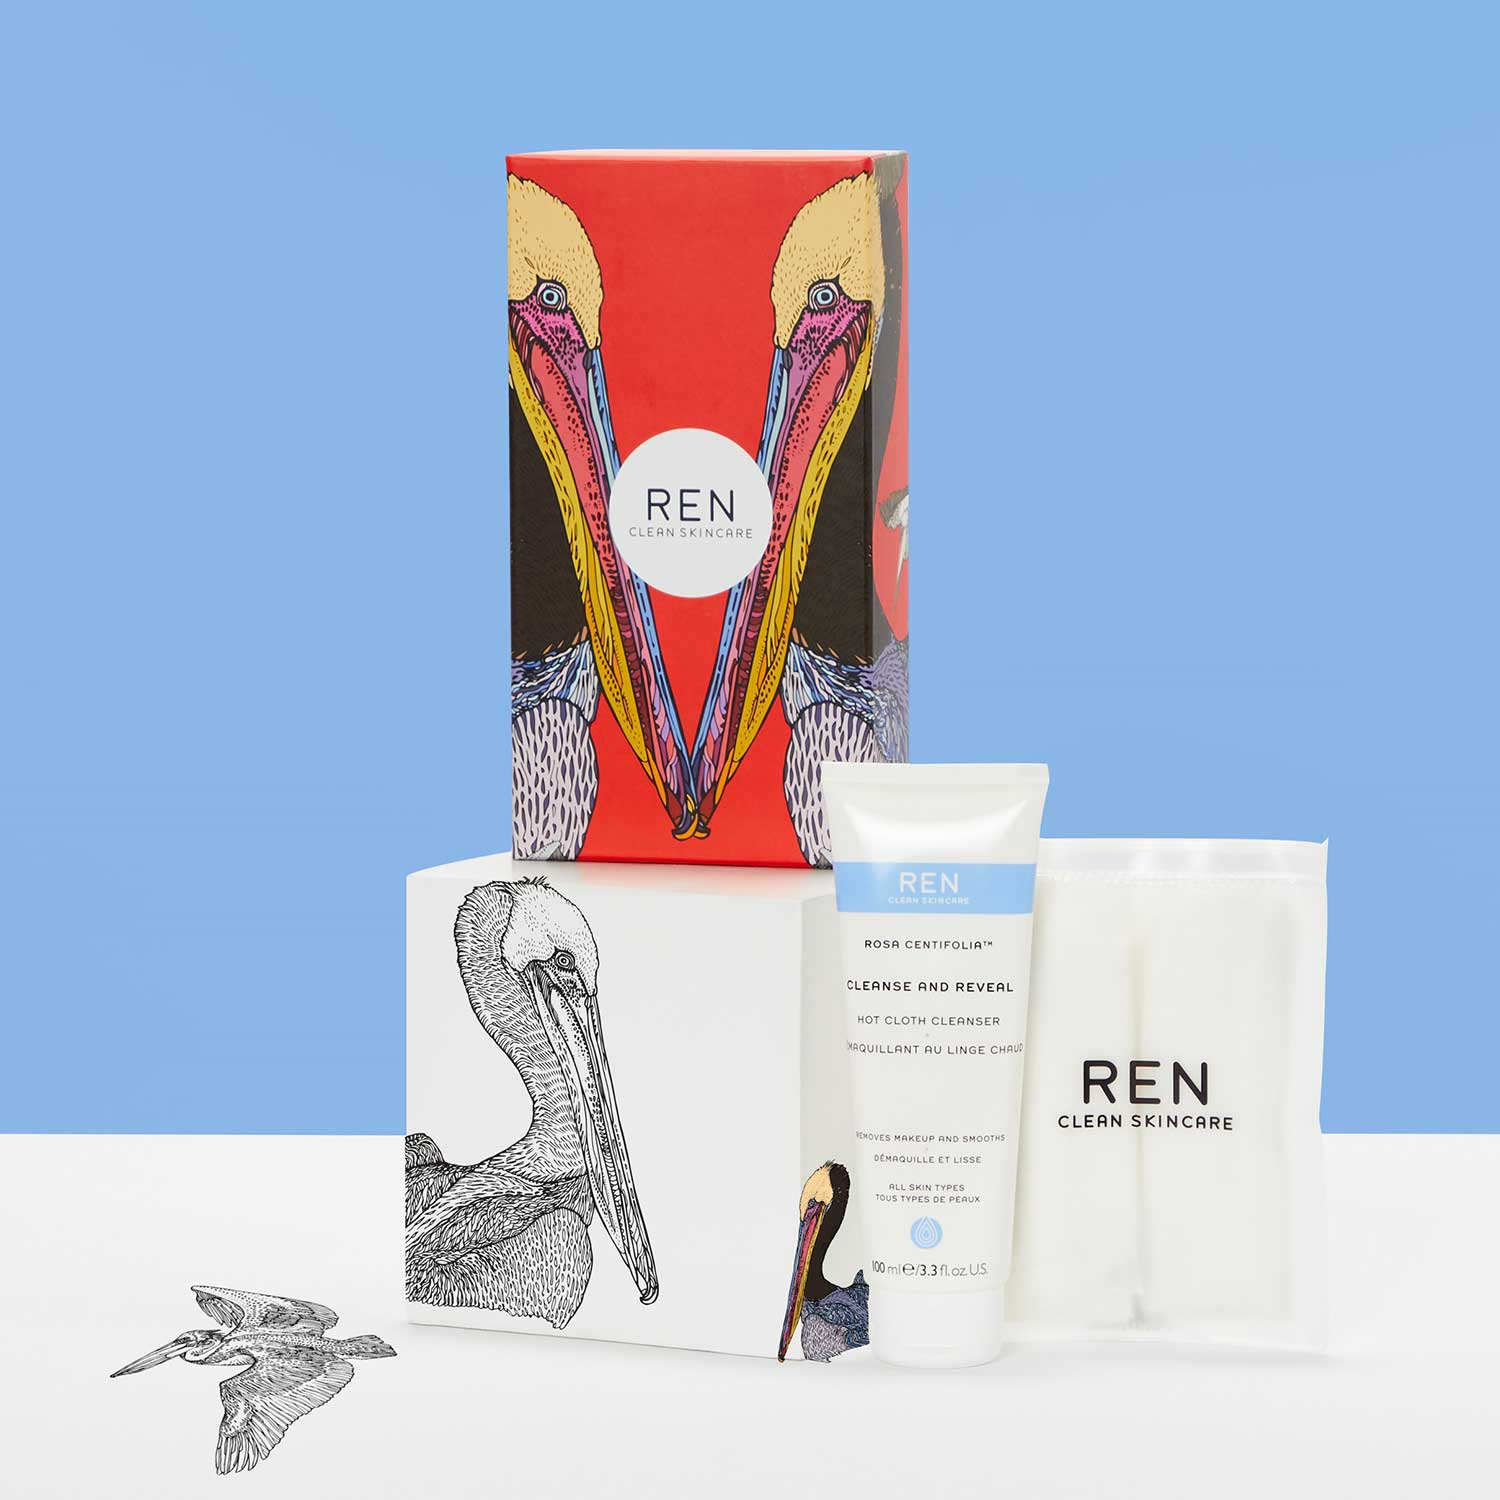 REN Clean Skincare Cleanse and Reveal Cleanser Holiday Gift Set